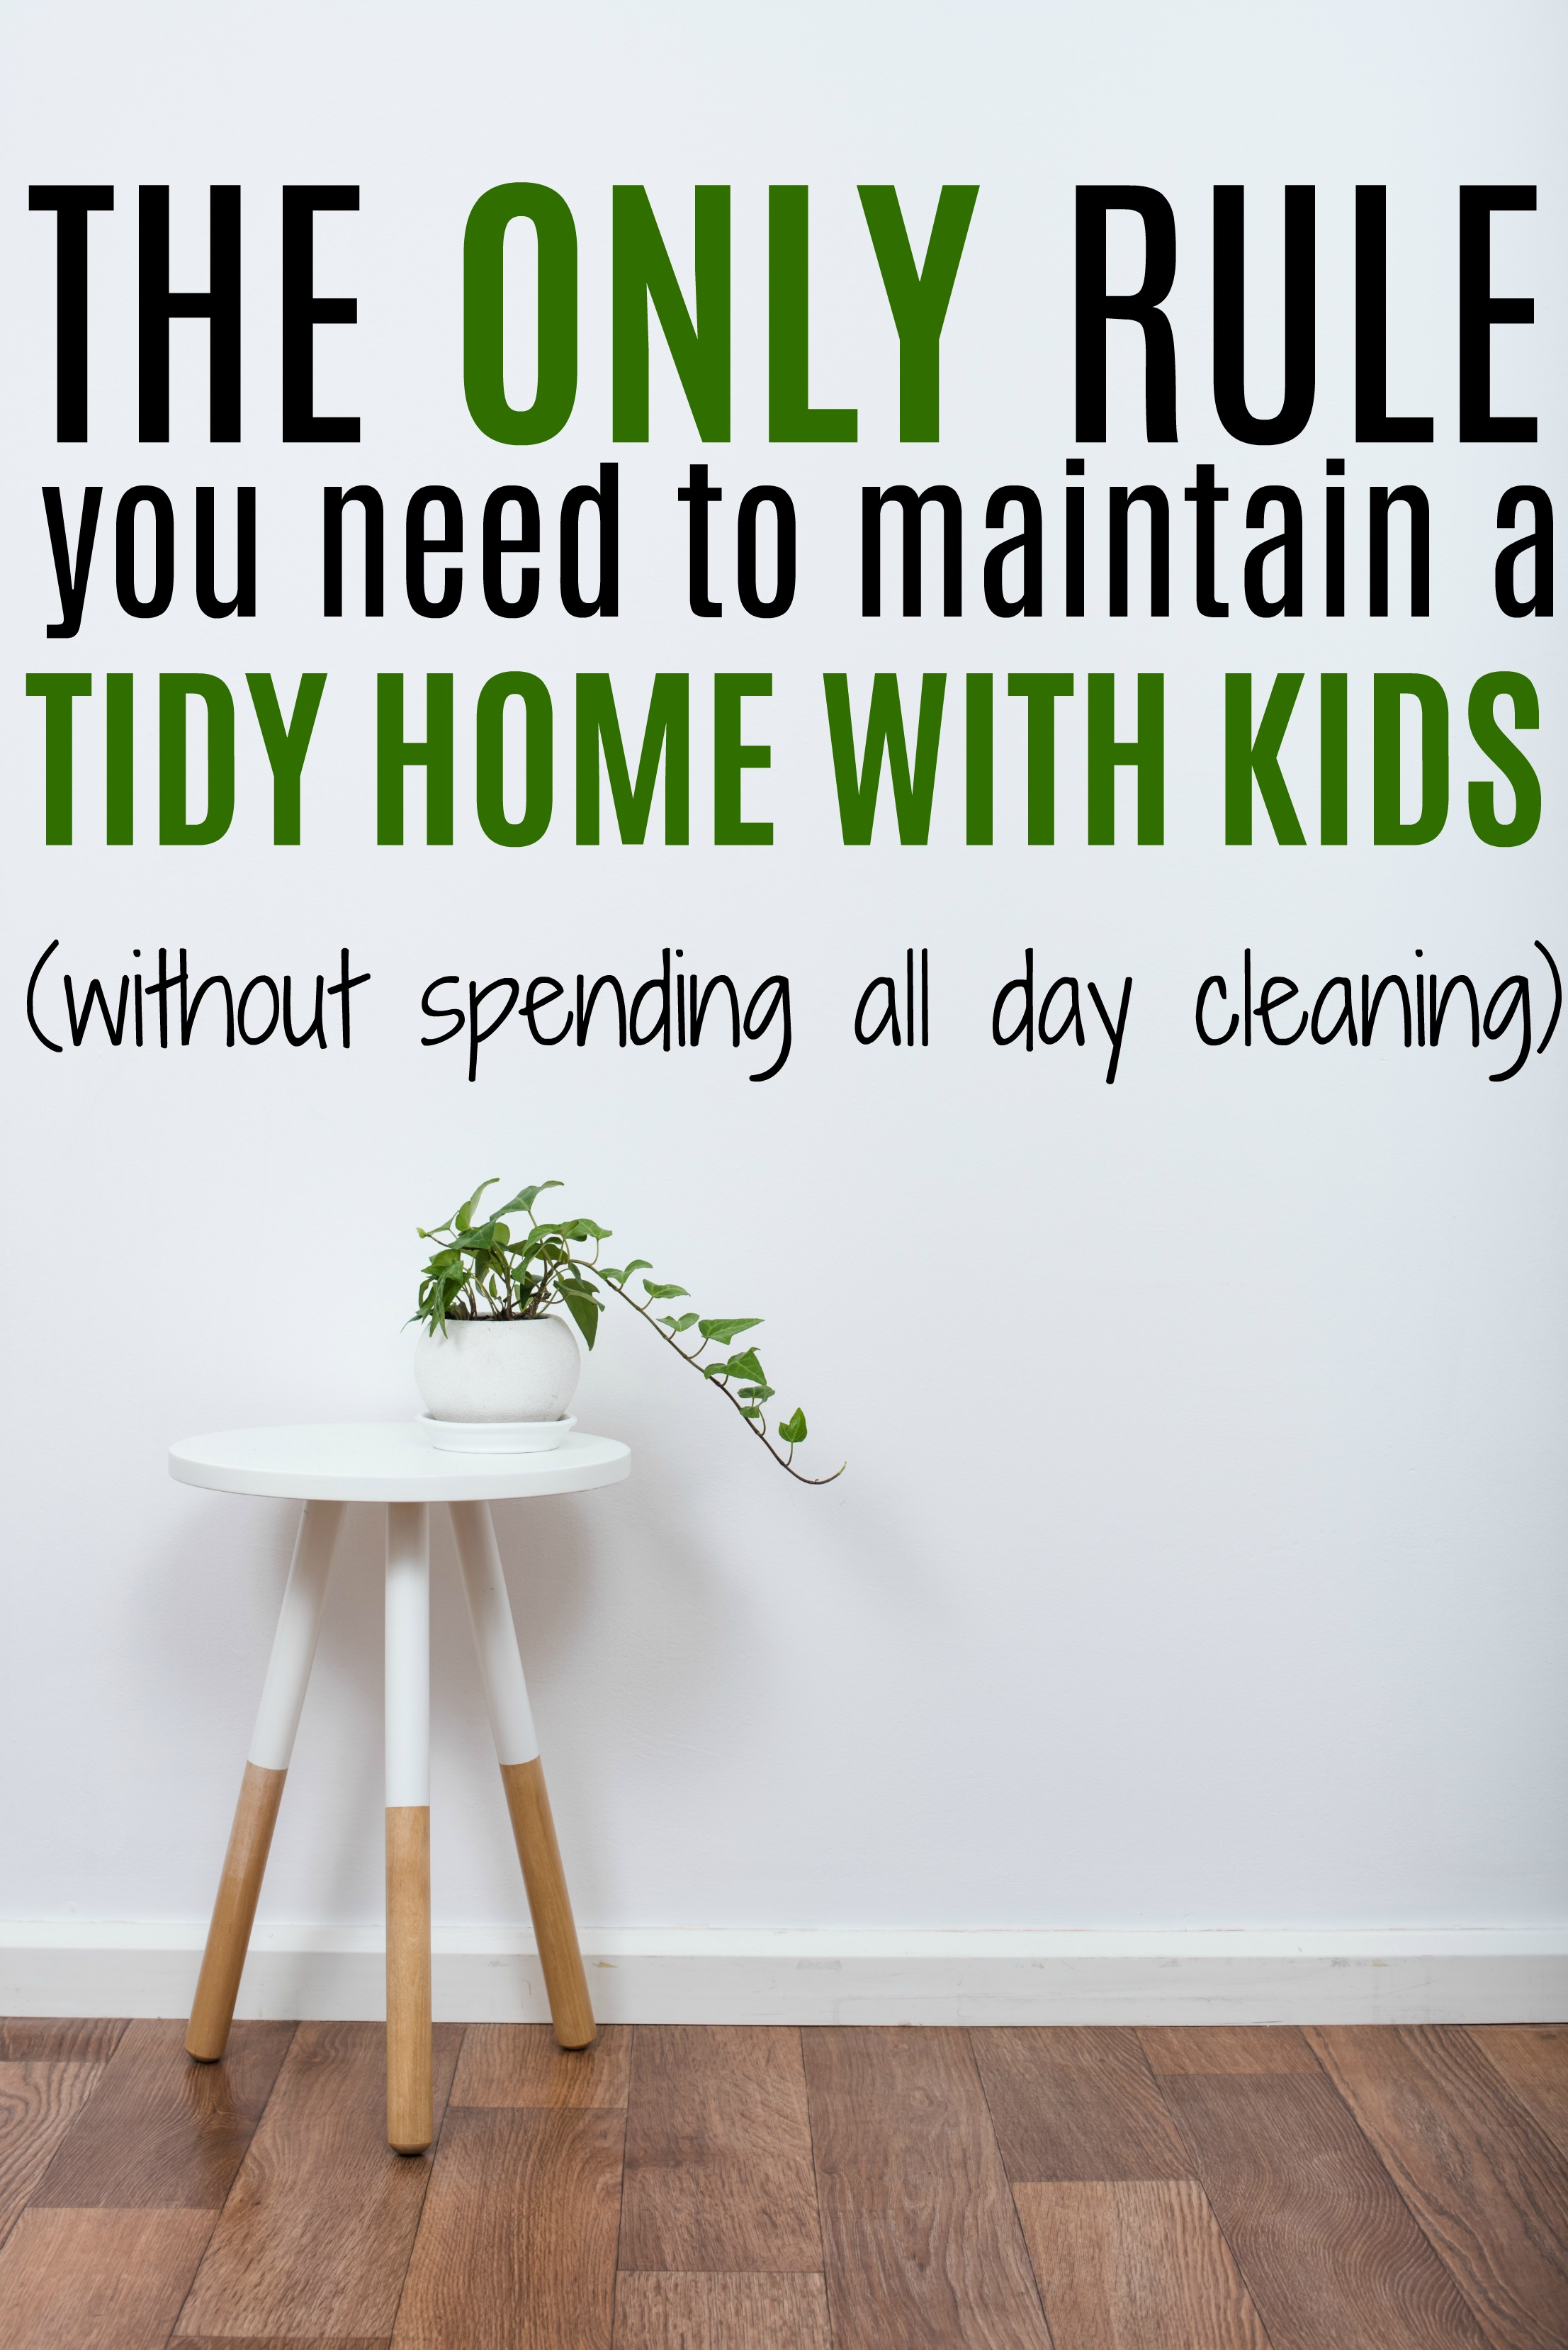 maintain a tidy home, kepe house tidy, clean house with kids, clutter free, homekeeping tips, cleaning tips